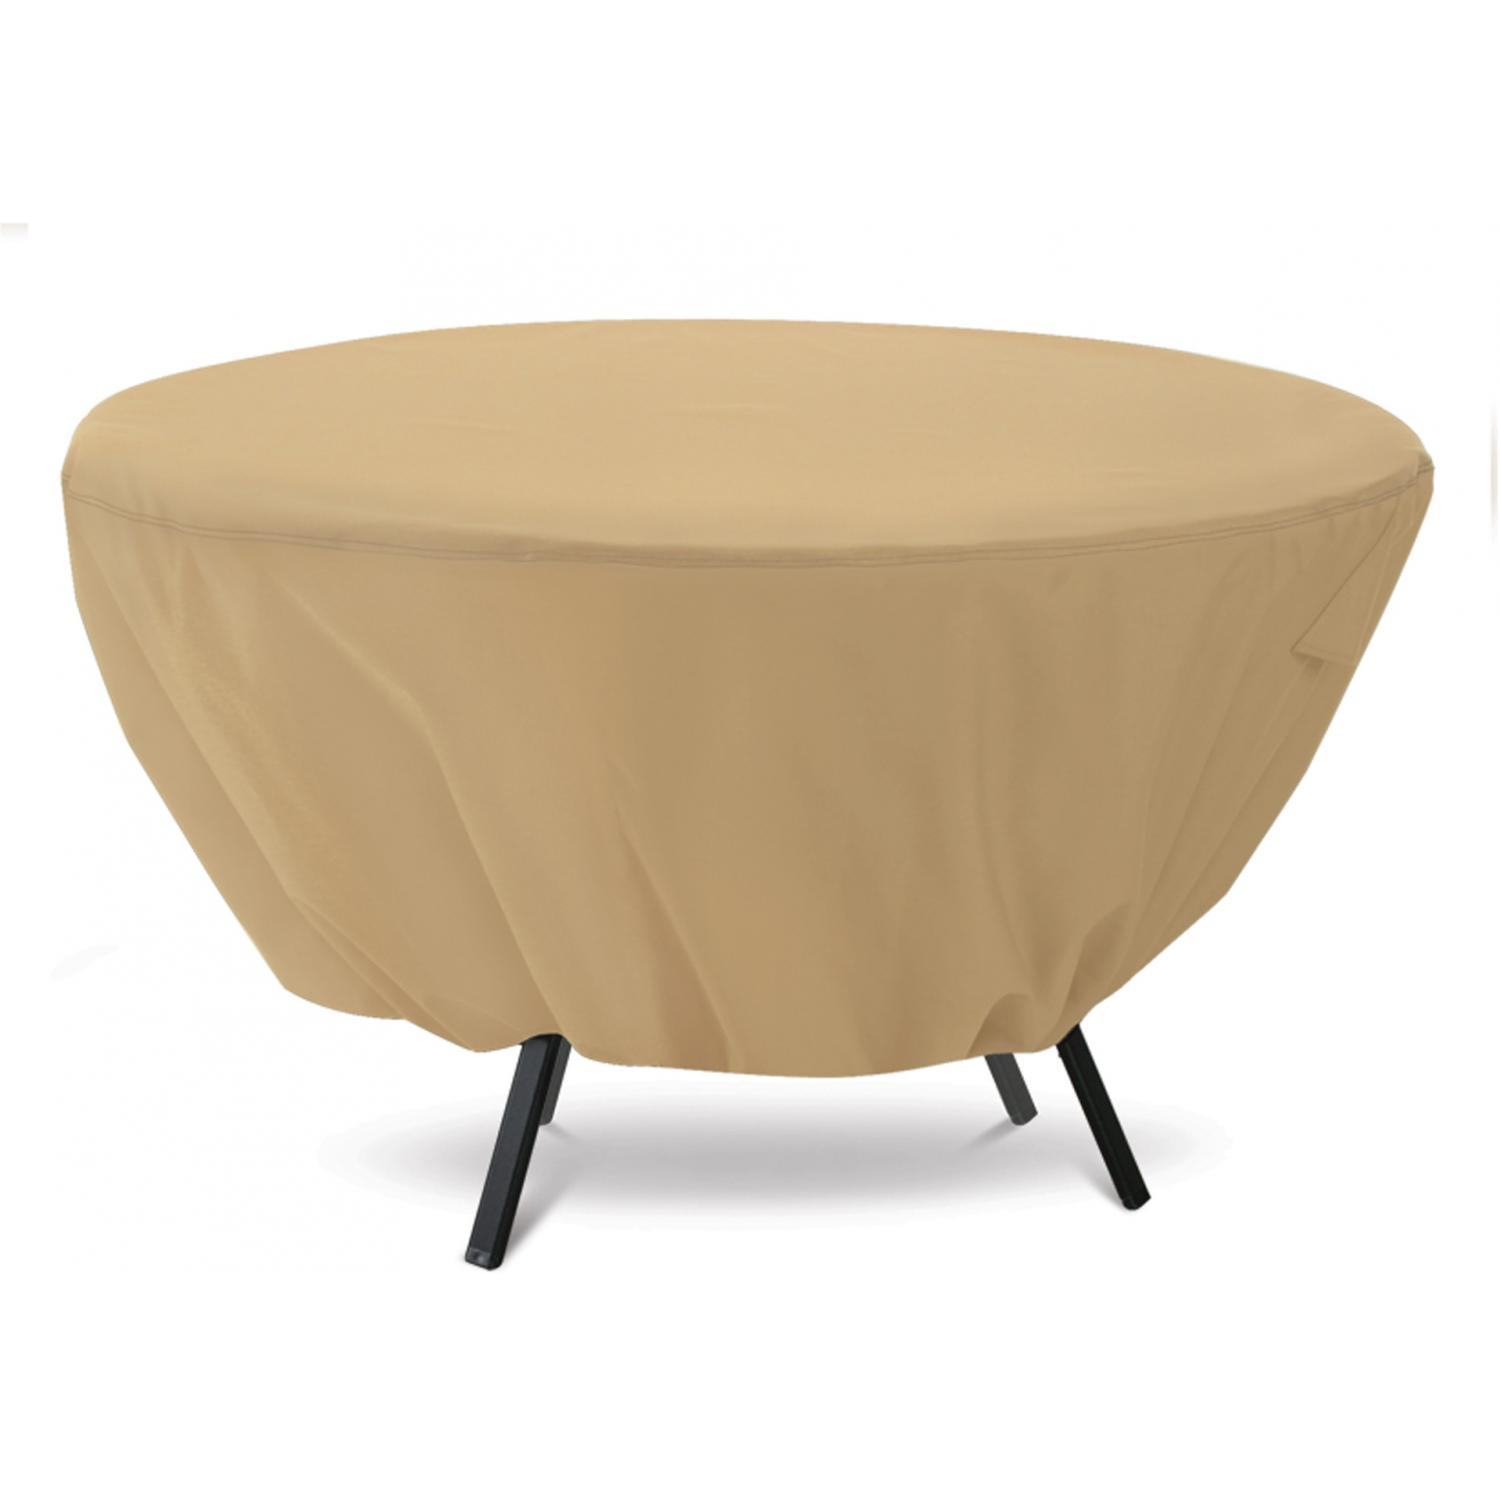 Classic Accessories Terrazzo Patio Table Cover - Sand - Std. Round (Table Only)